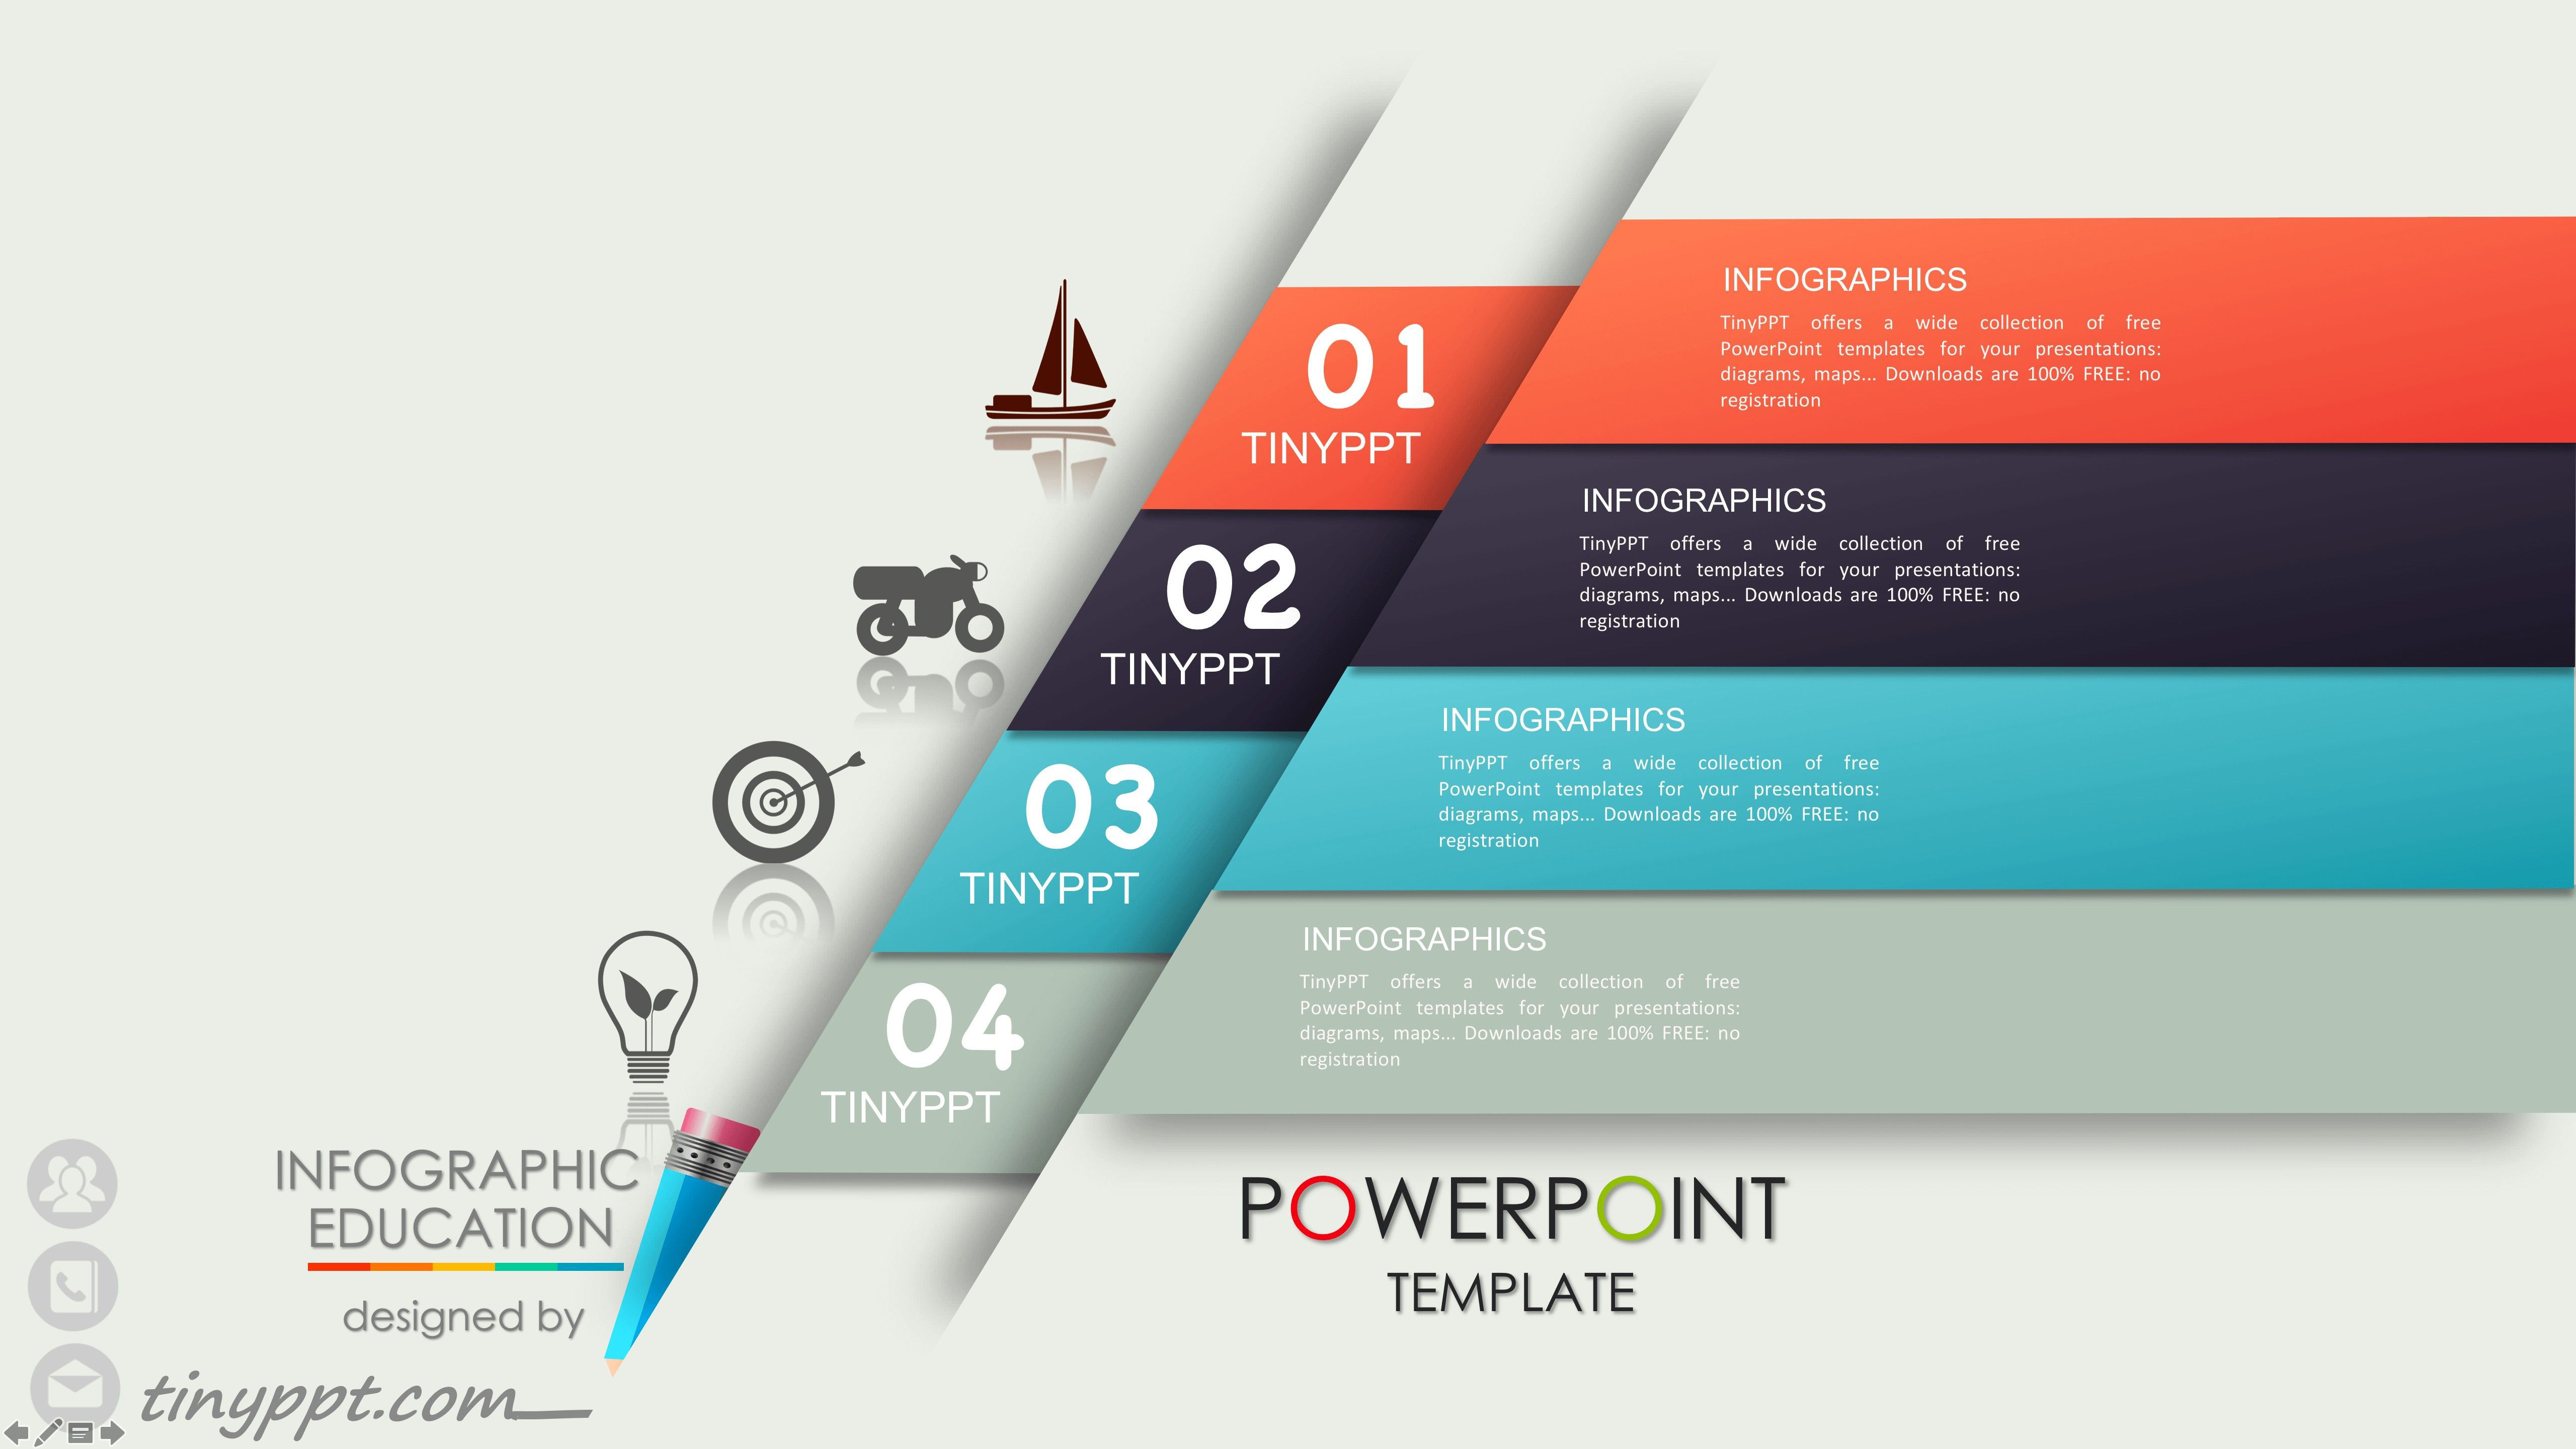 003 Impressive Power Point Presentation Template Free Highest Quality  Powerpoint Layout Download 2019 Modern BusinesFull